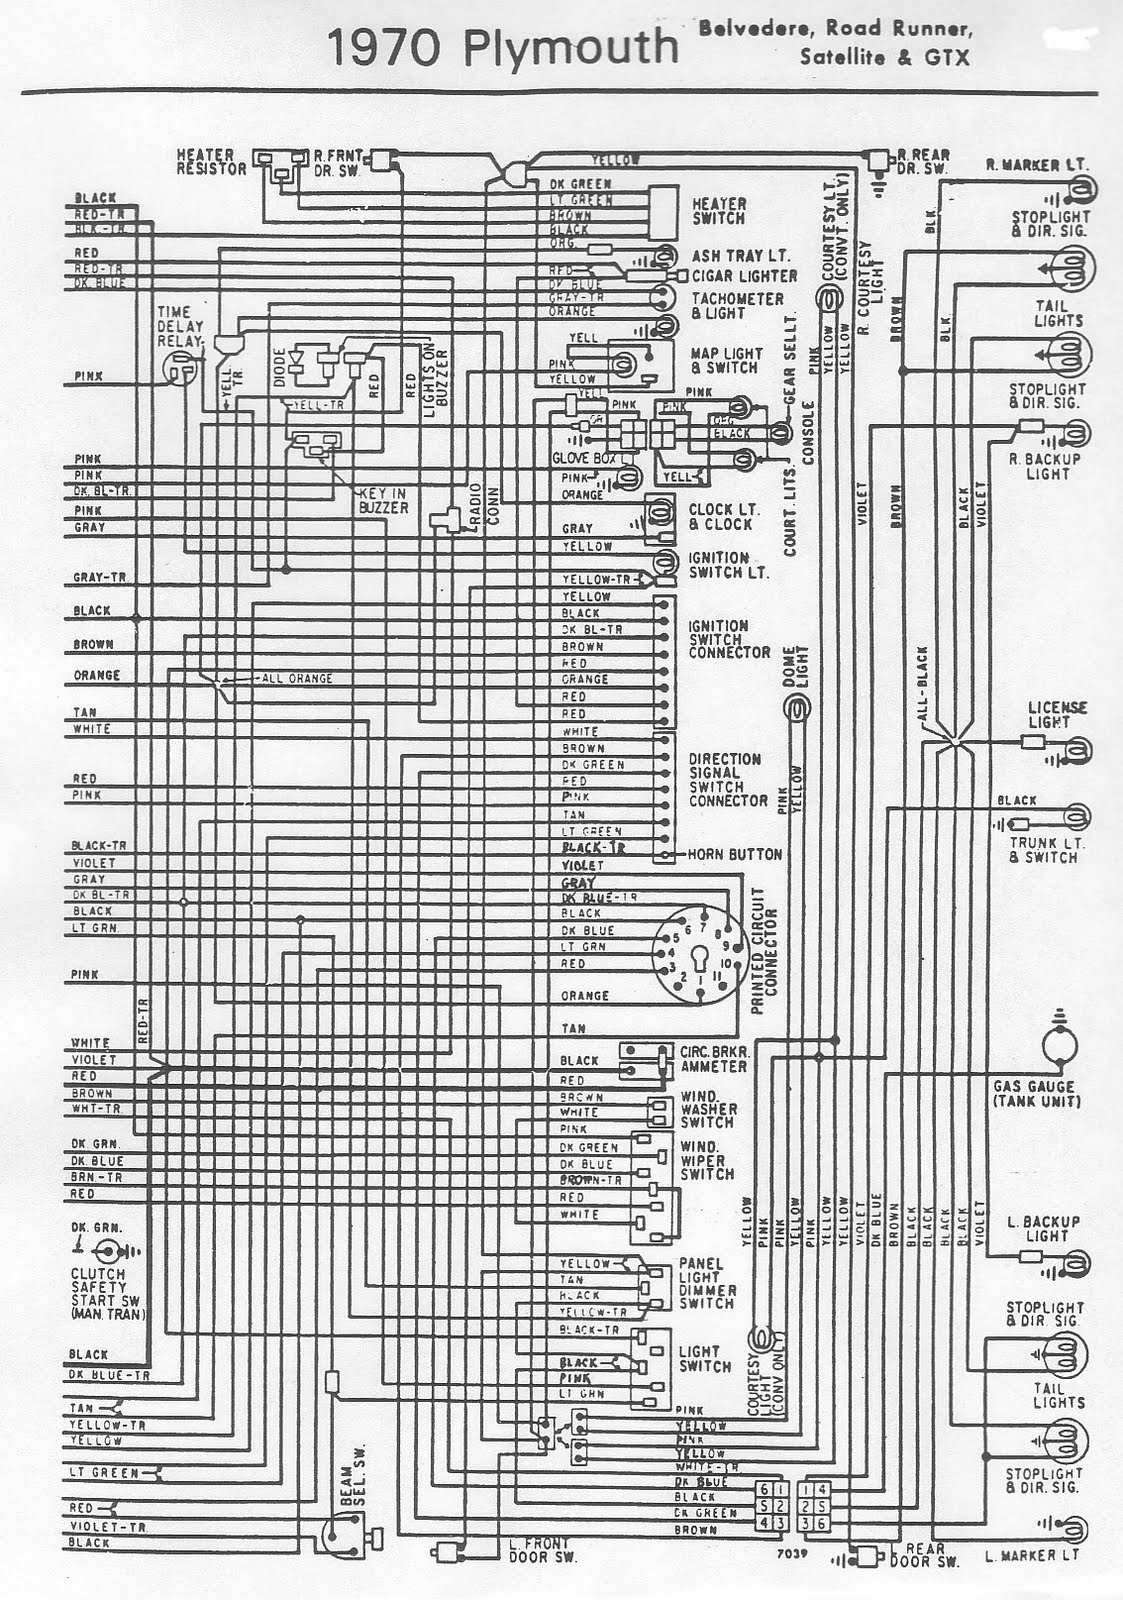 Plymouth Wiring Diagram on plymouth parts diagrams, plymouth interior diagrams, plymouth transmission diagrams, plymouth engine,